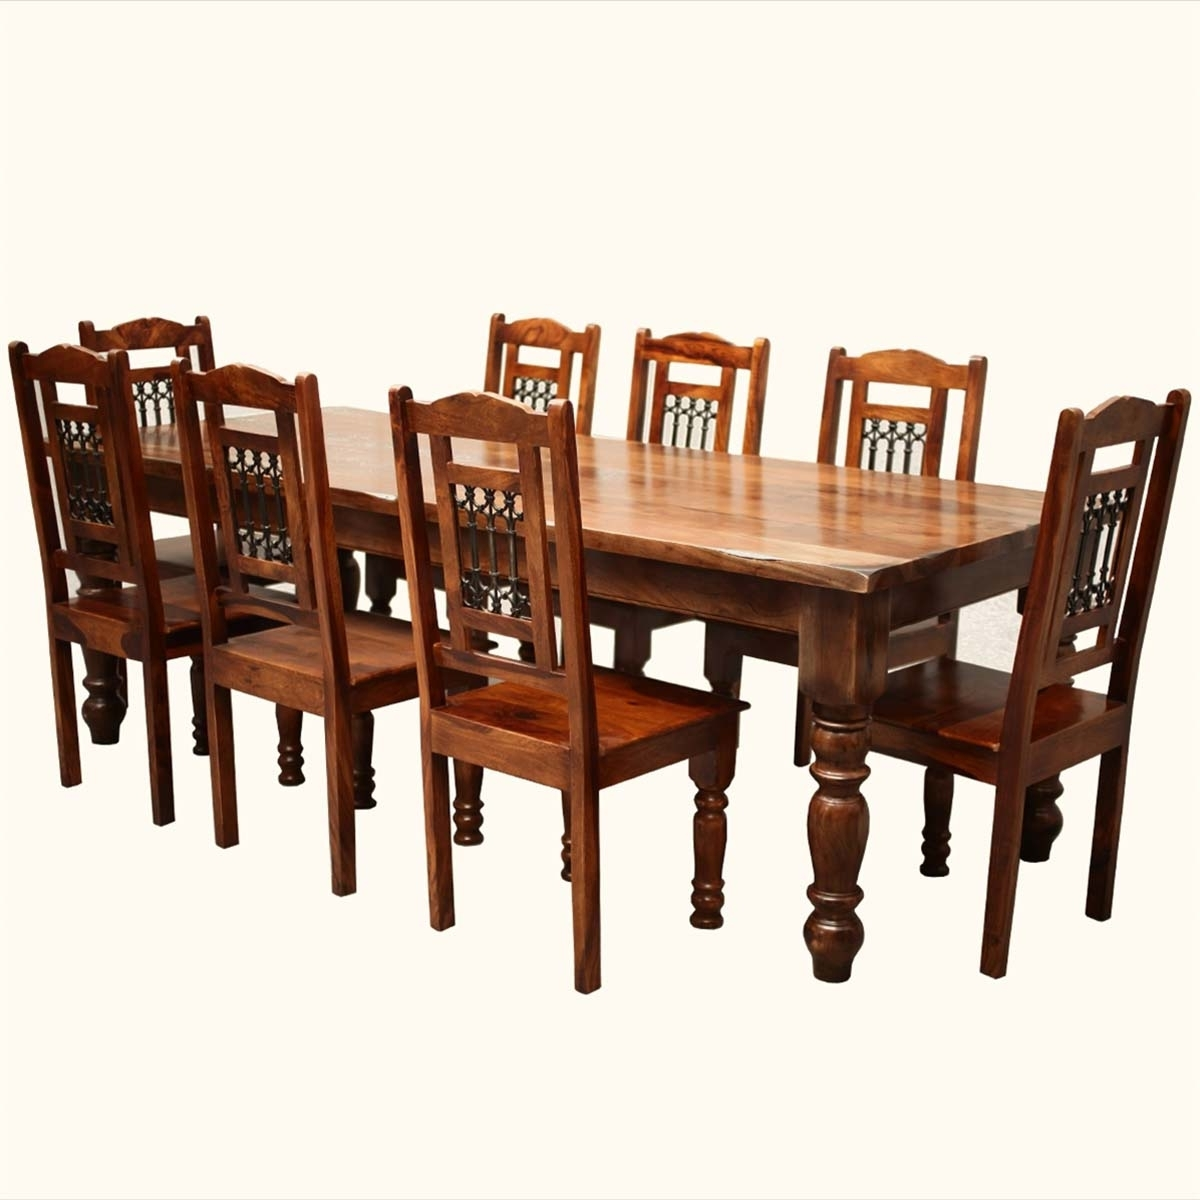 Dining Tables And 8 Chairs Sets regarding Famous 8 Chair Dining Table Sets Gallery Dining, Dining Table Set 8 Chairs